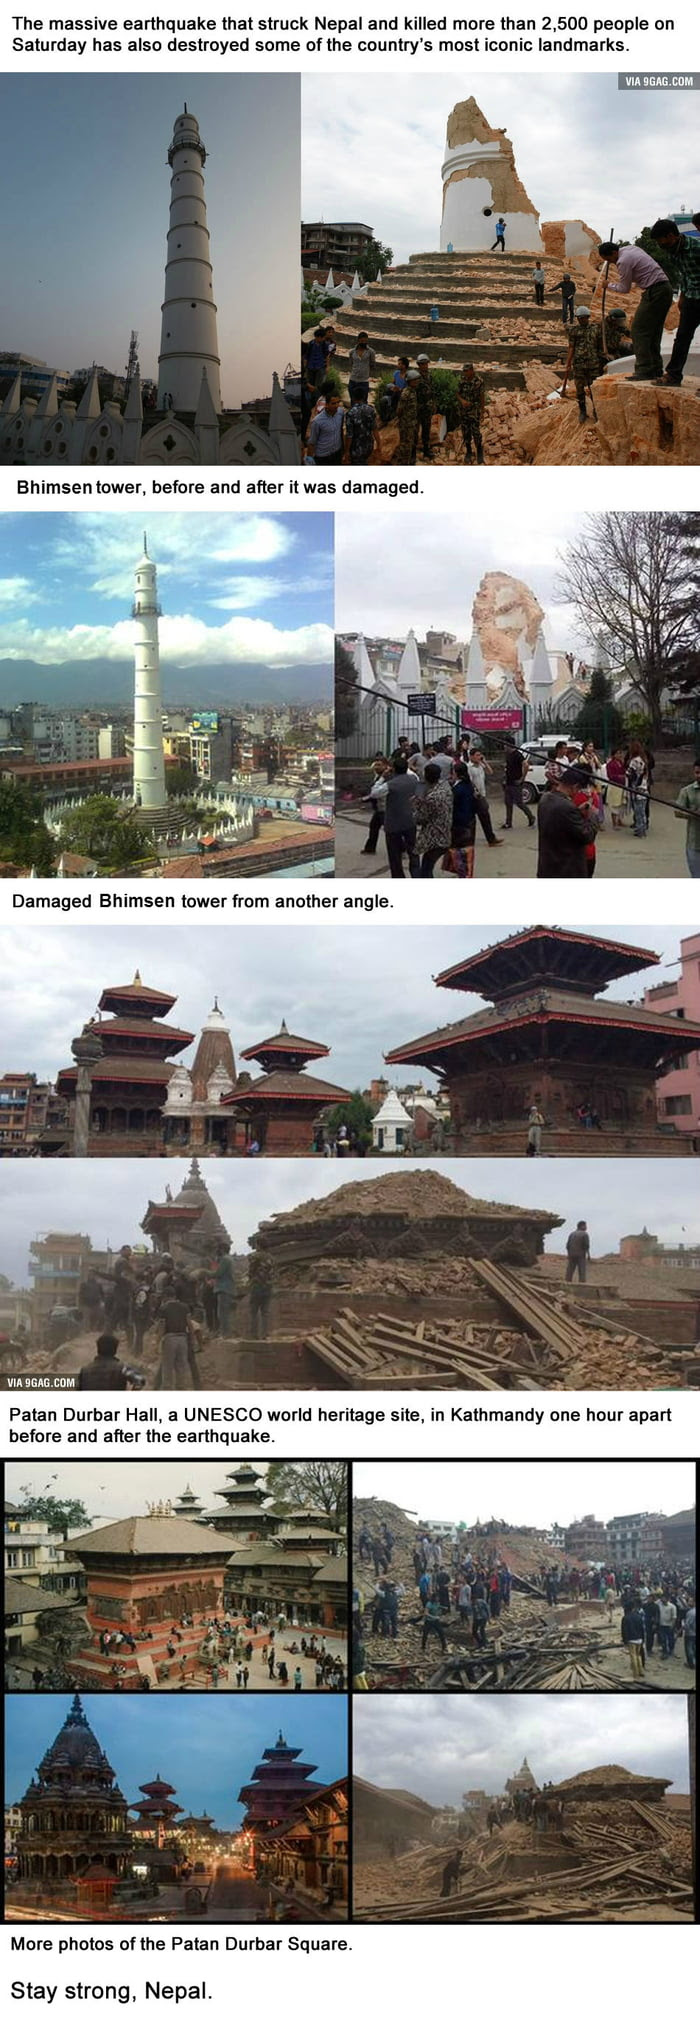 Before And After Photos Of Nepal's Landmarks That Reveal The Impact Of The Massive Earthquake